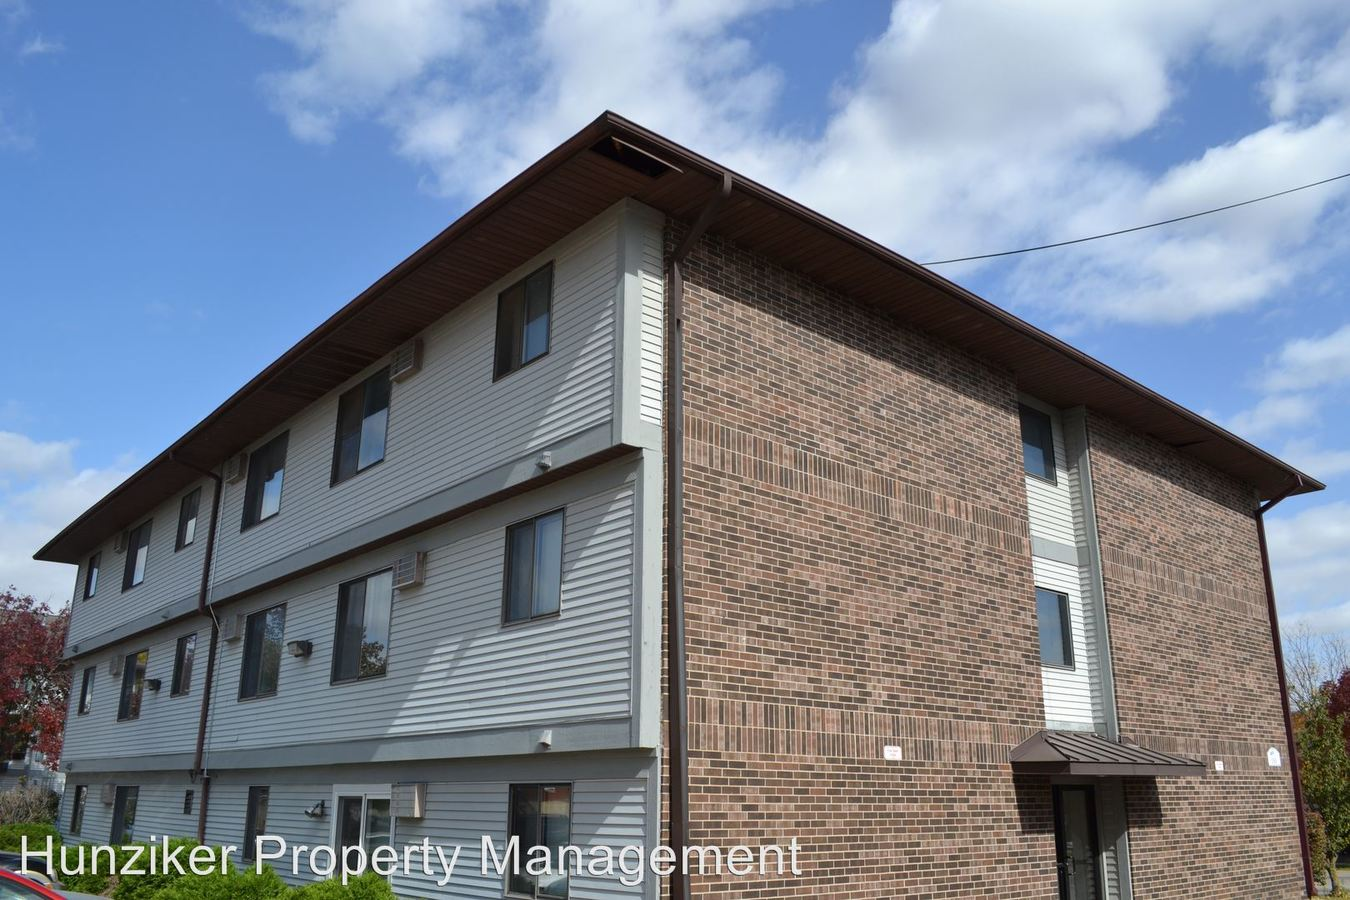 1 Bedroom 1 Bathroom Apartment for rent at 153 N. Hyland in Ames, IA